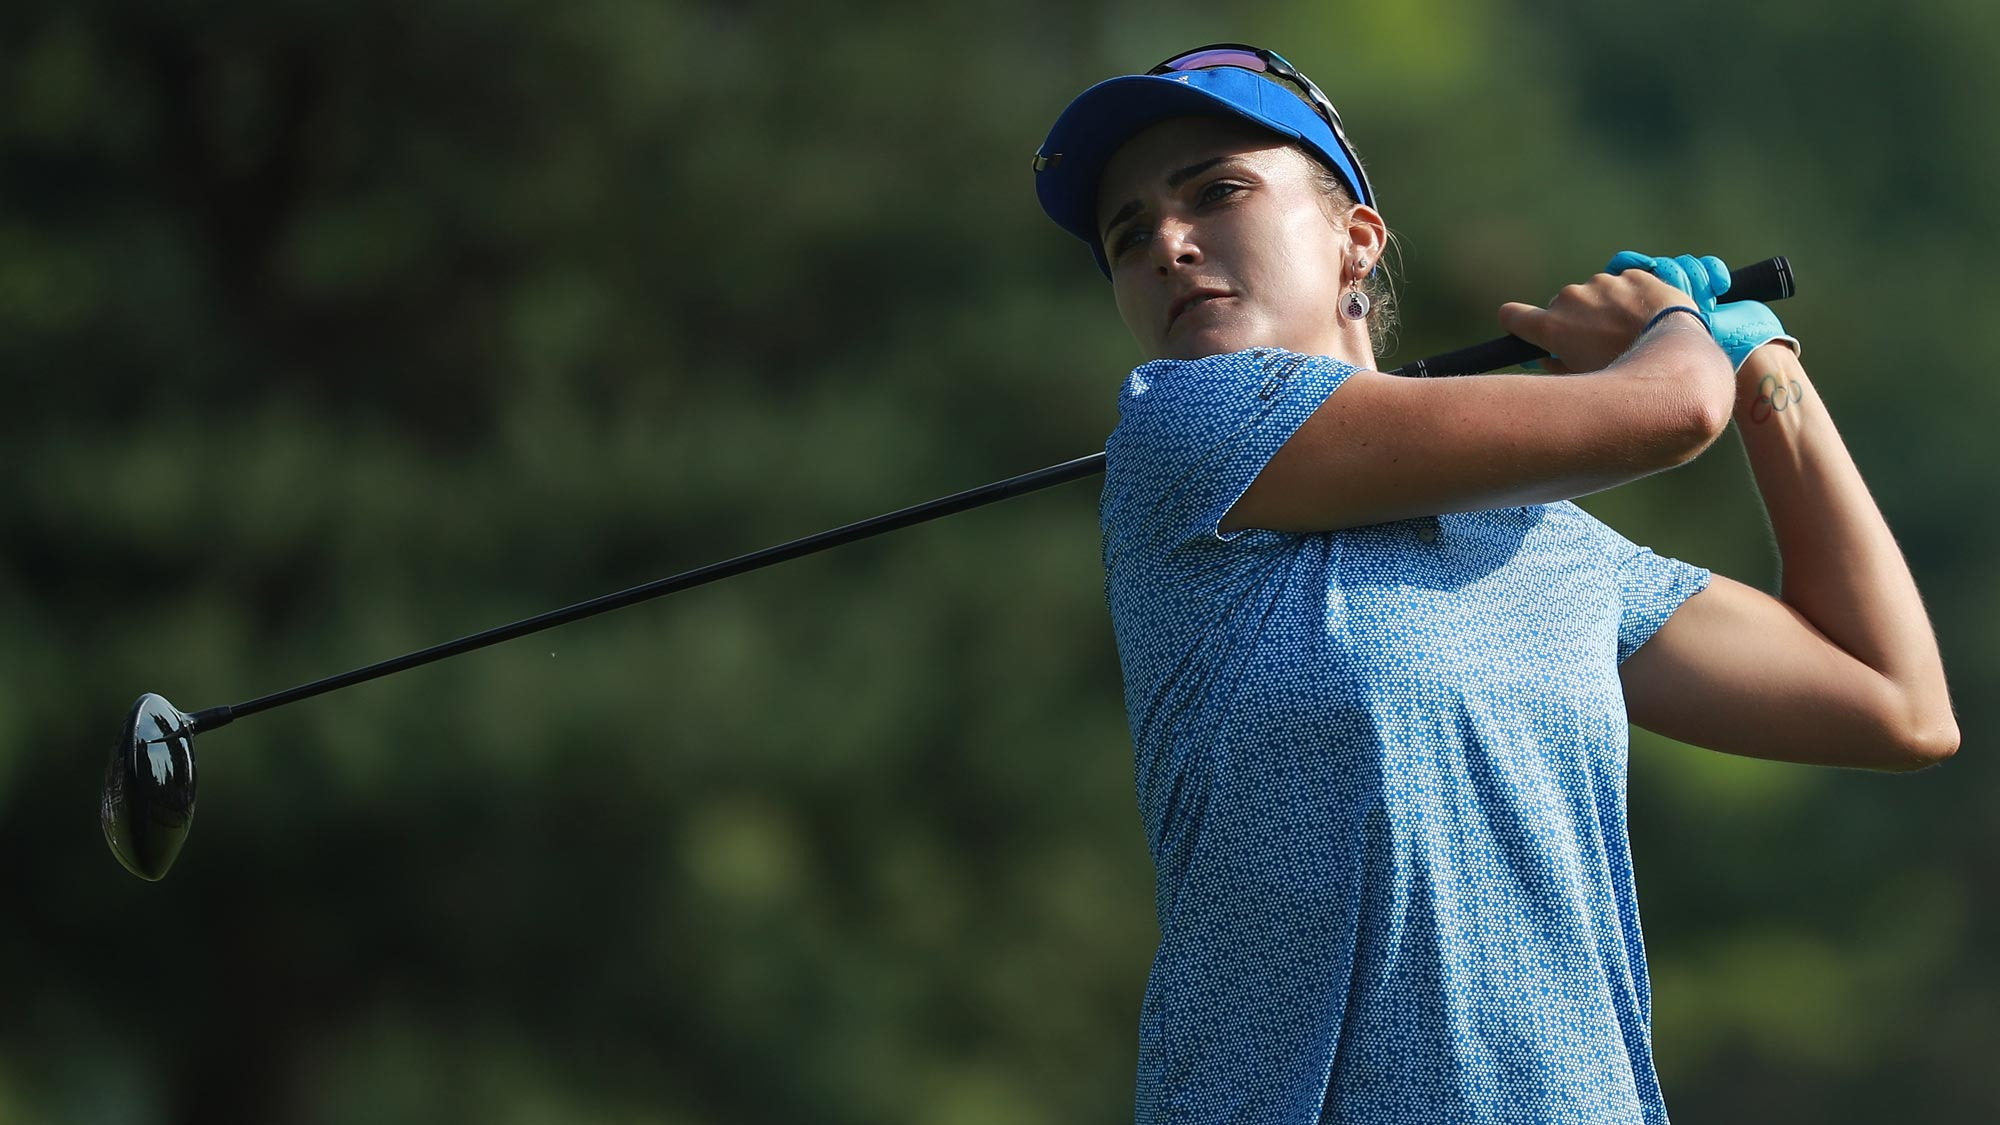 Lexi Thompson hits her tee shot on the fifth hole during the final round of the KPMG Women's PGA Championship